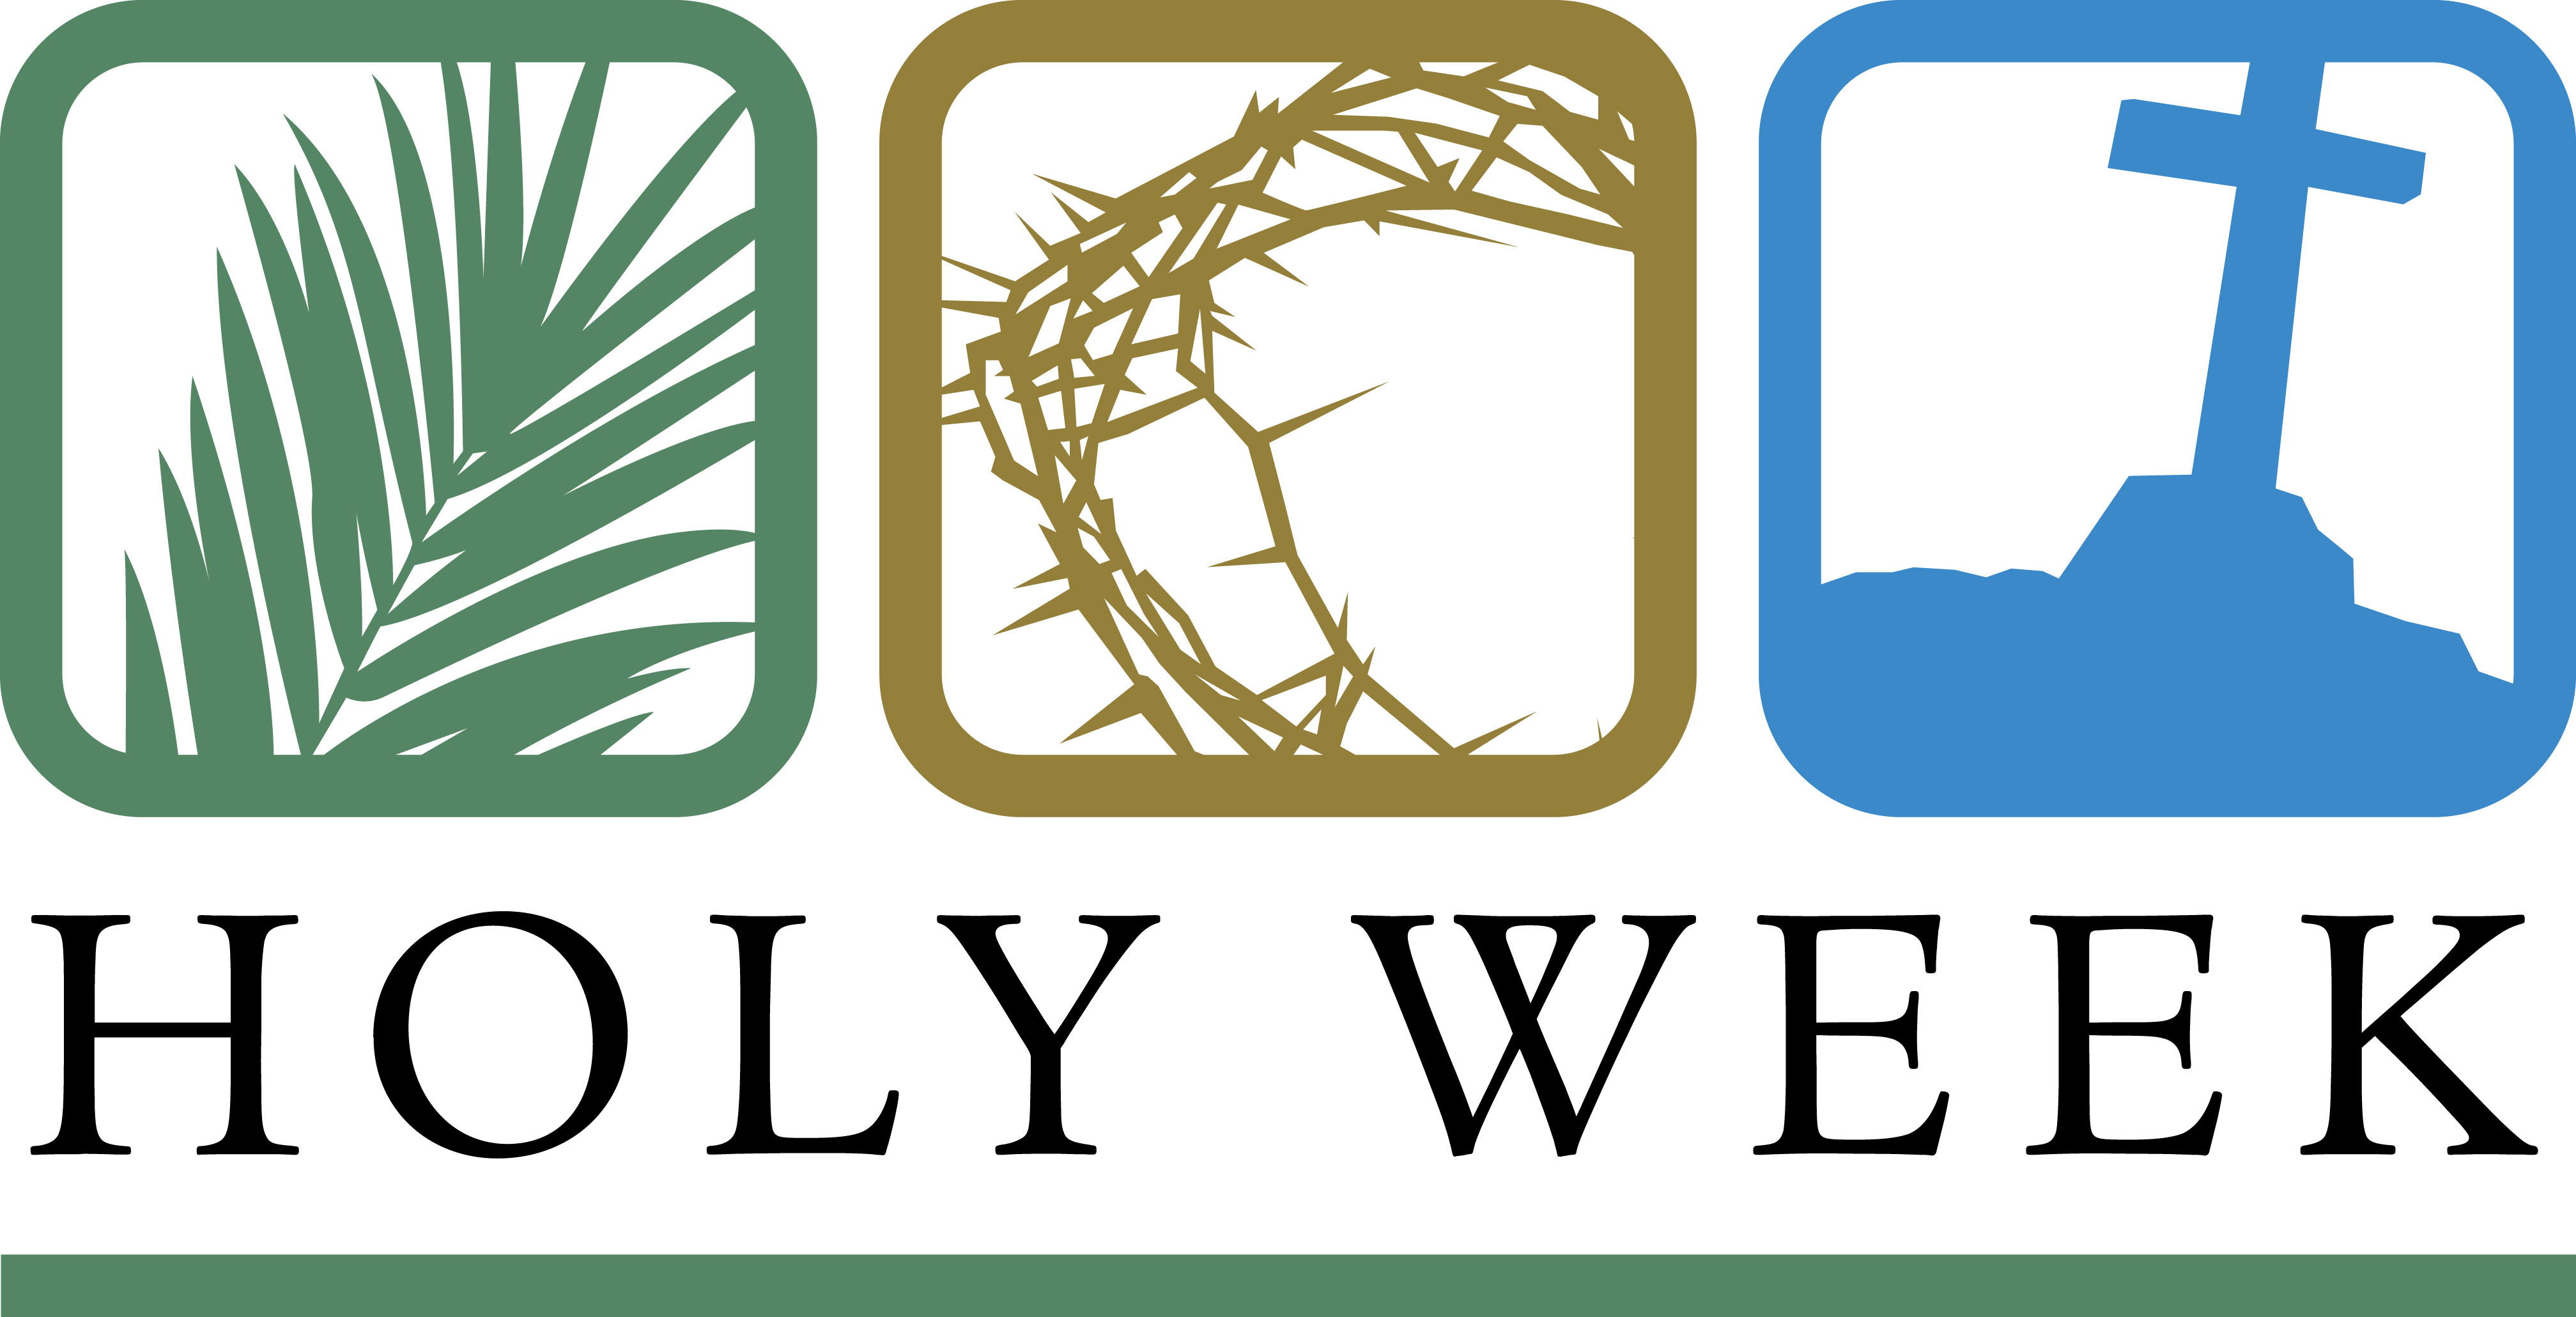 4031x2061 Holy Week Reflection Freedom In Christ The Daddy Blitz